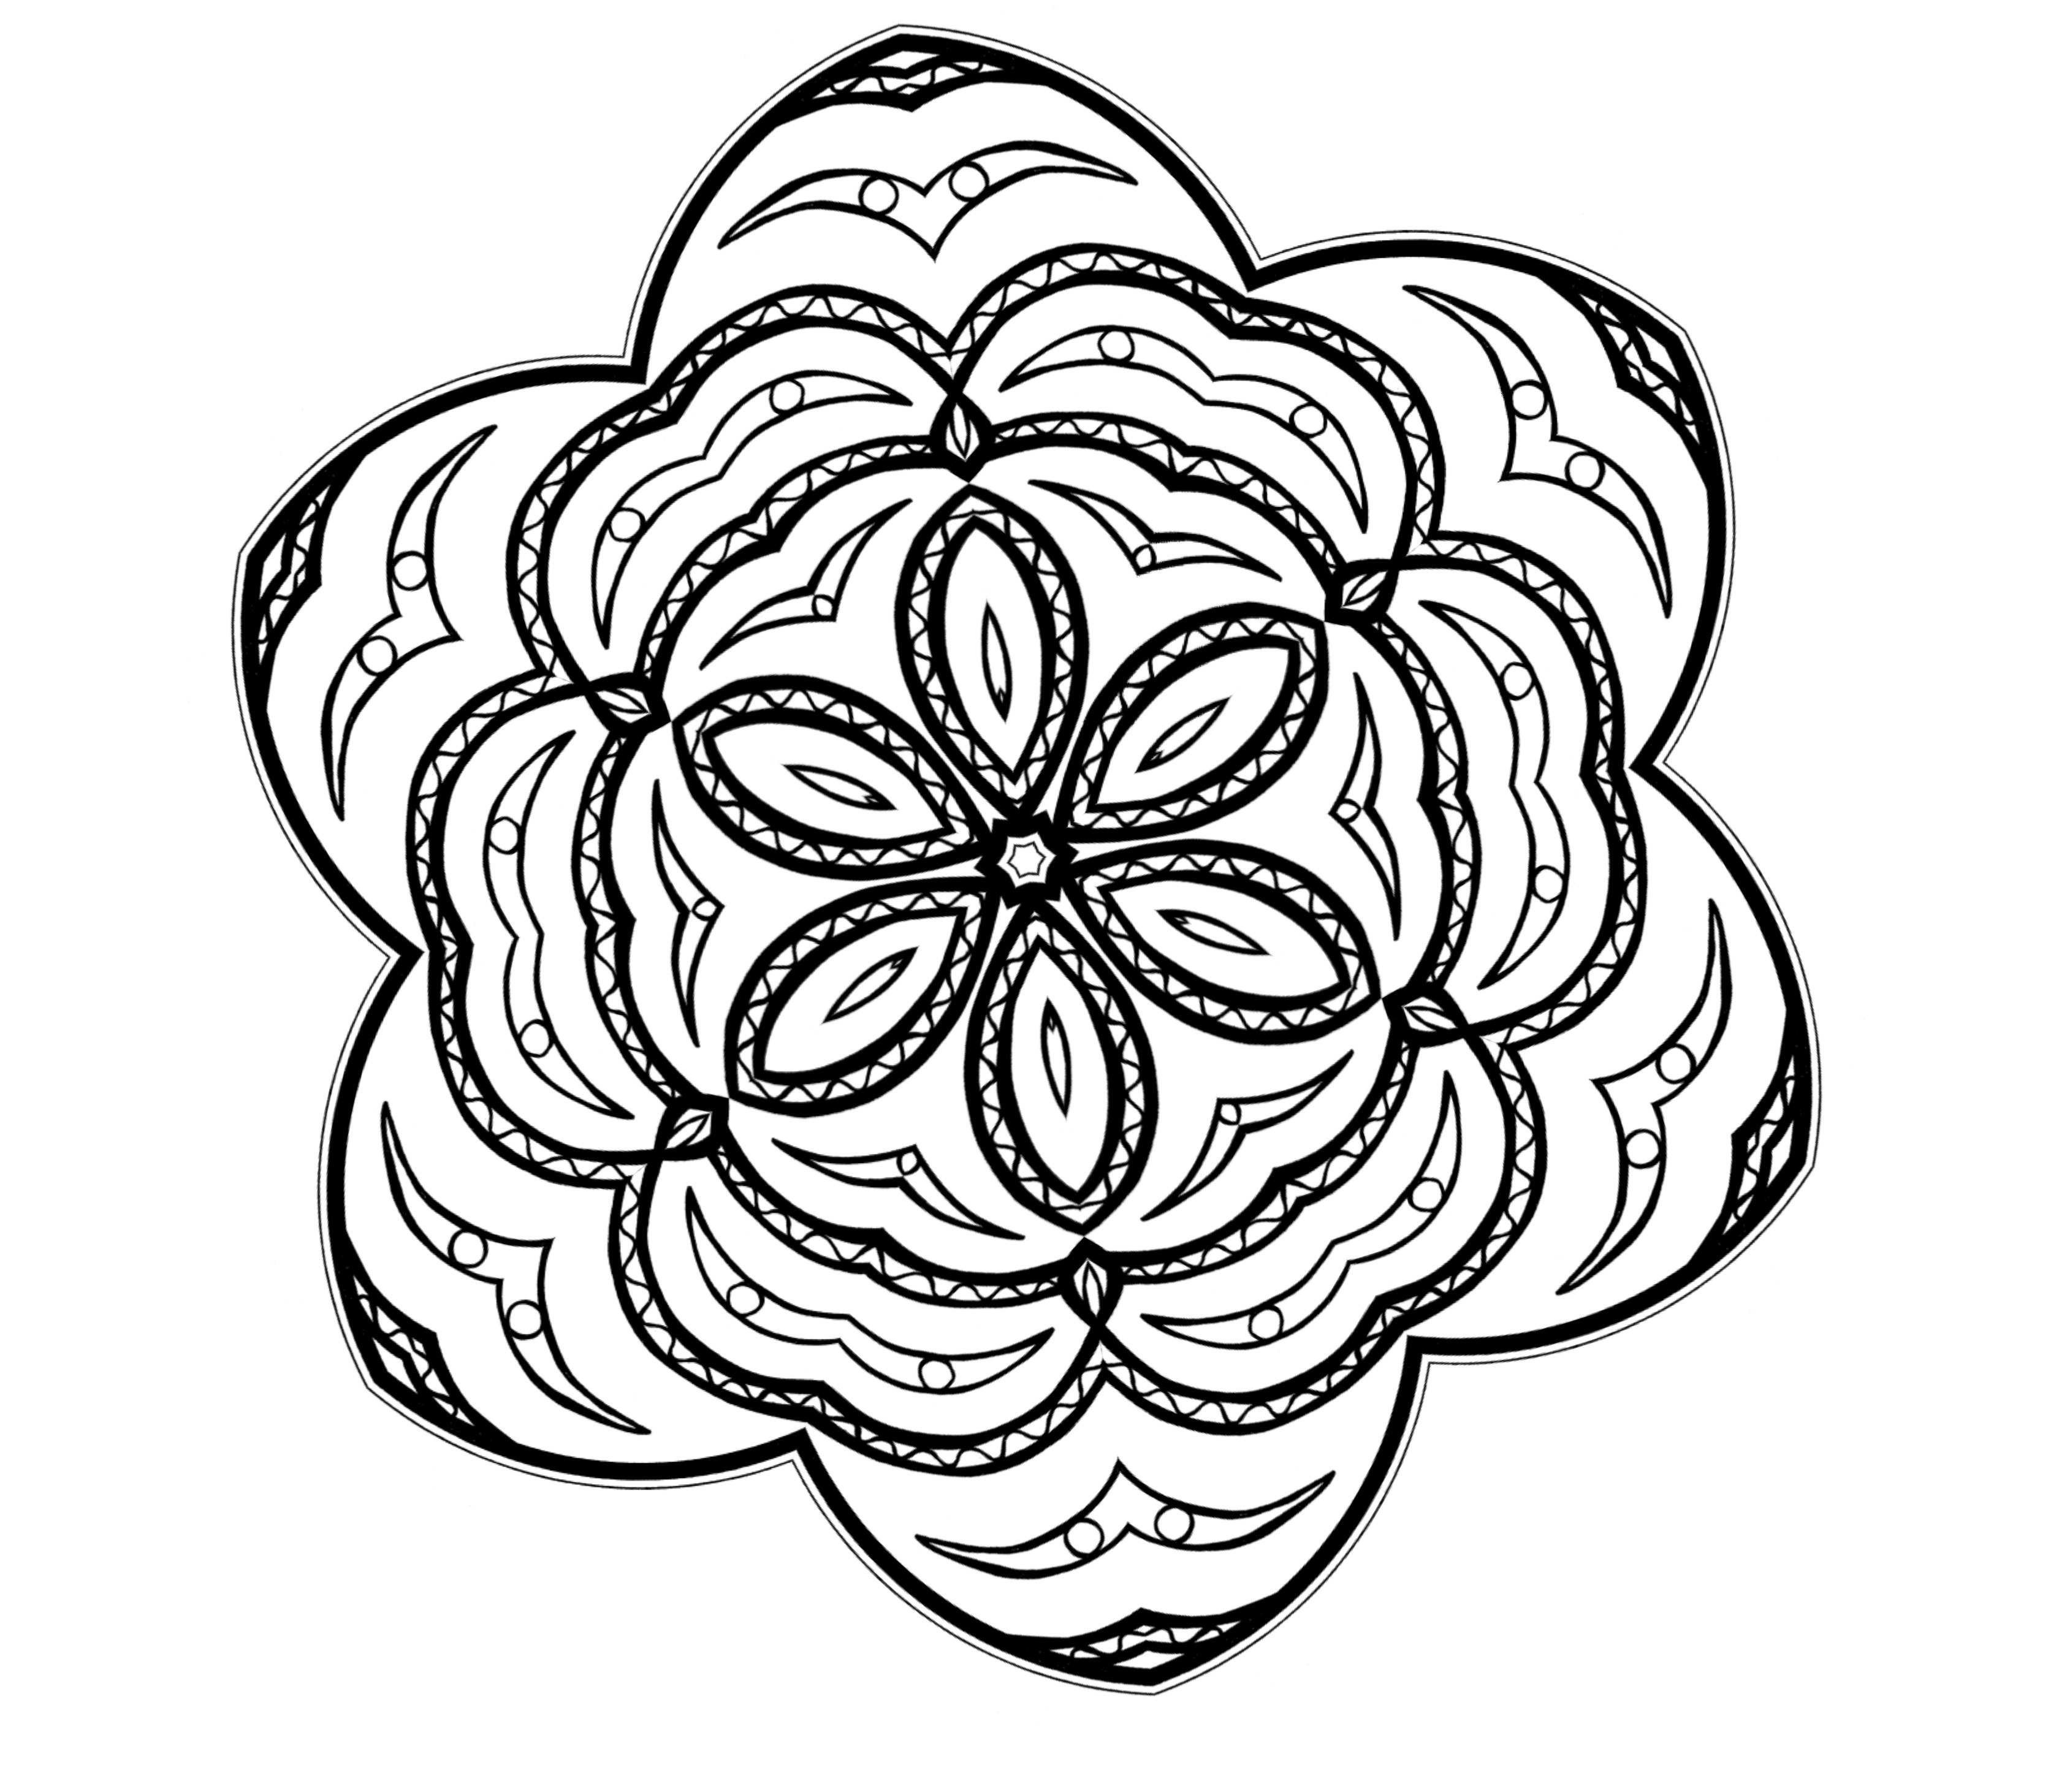 Free coloring pages kaleidoscope designs - Free Coloring Pages Kaleidoscope Designs